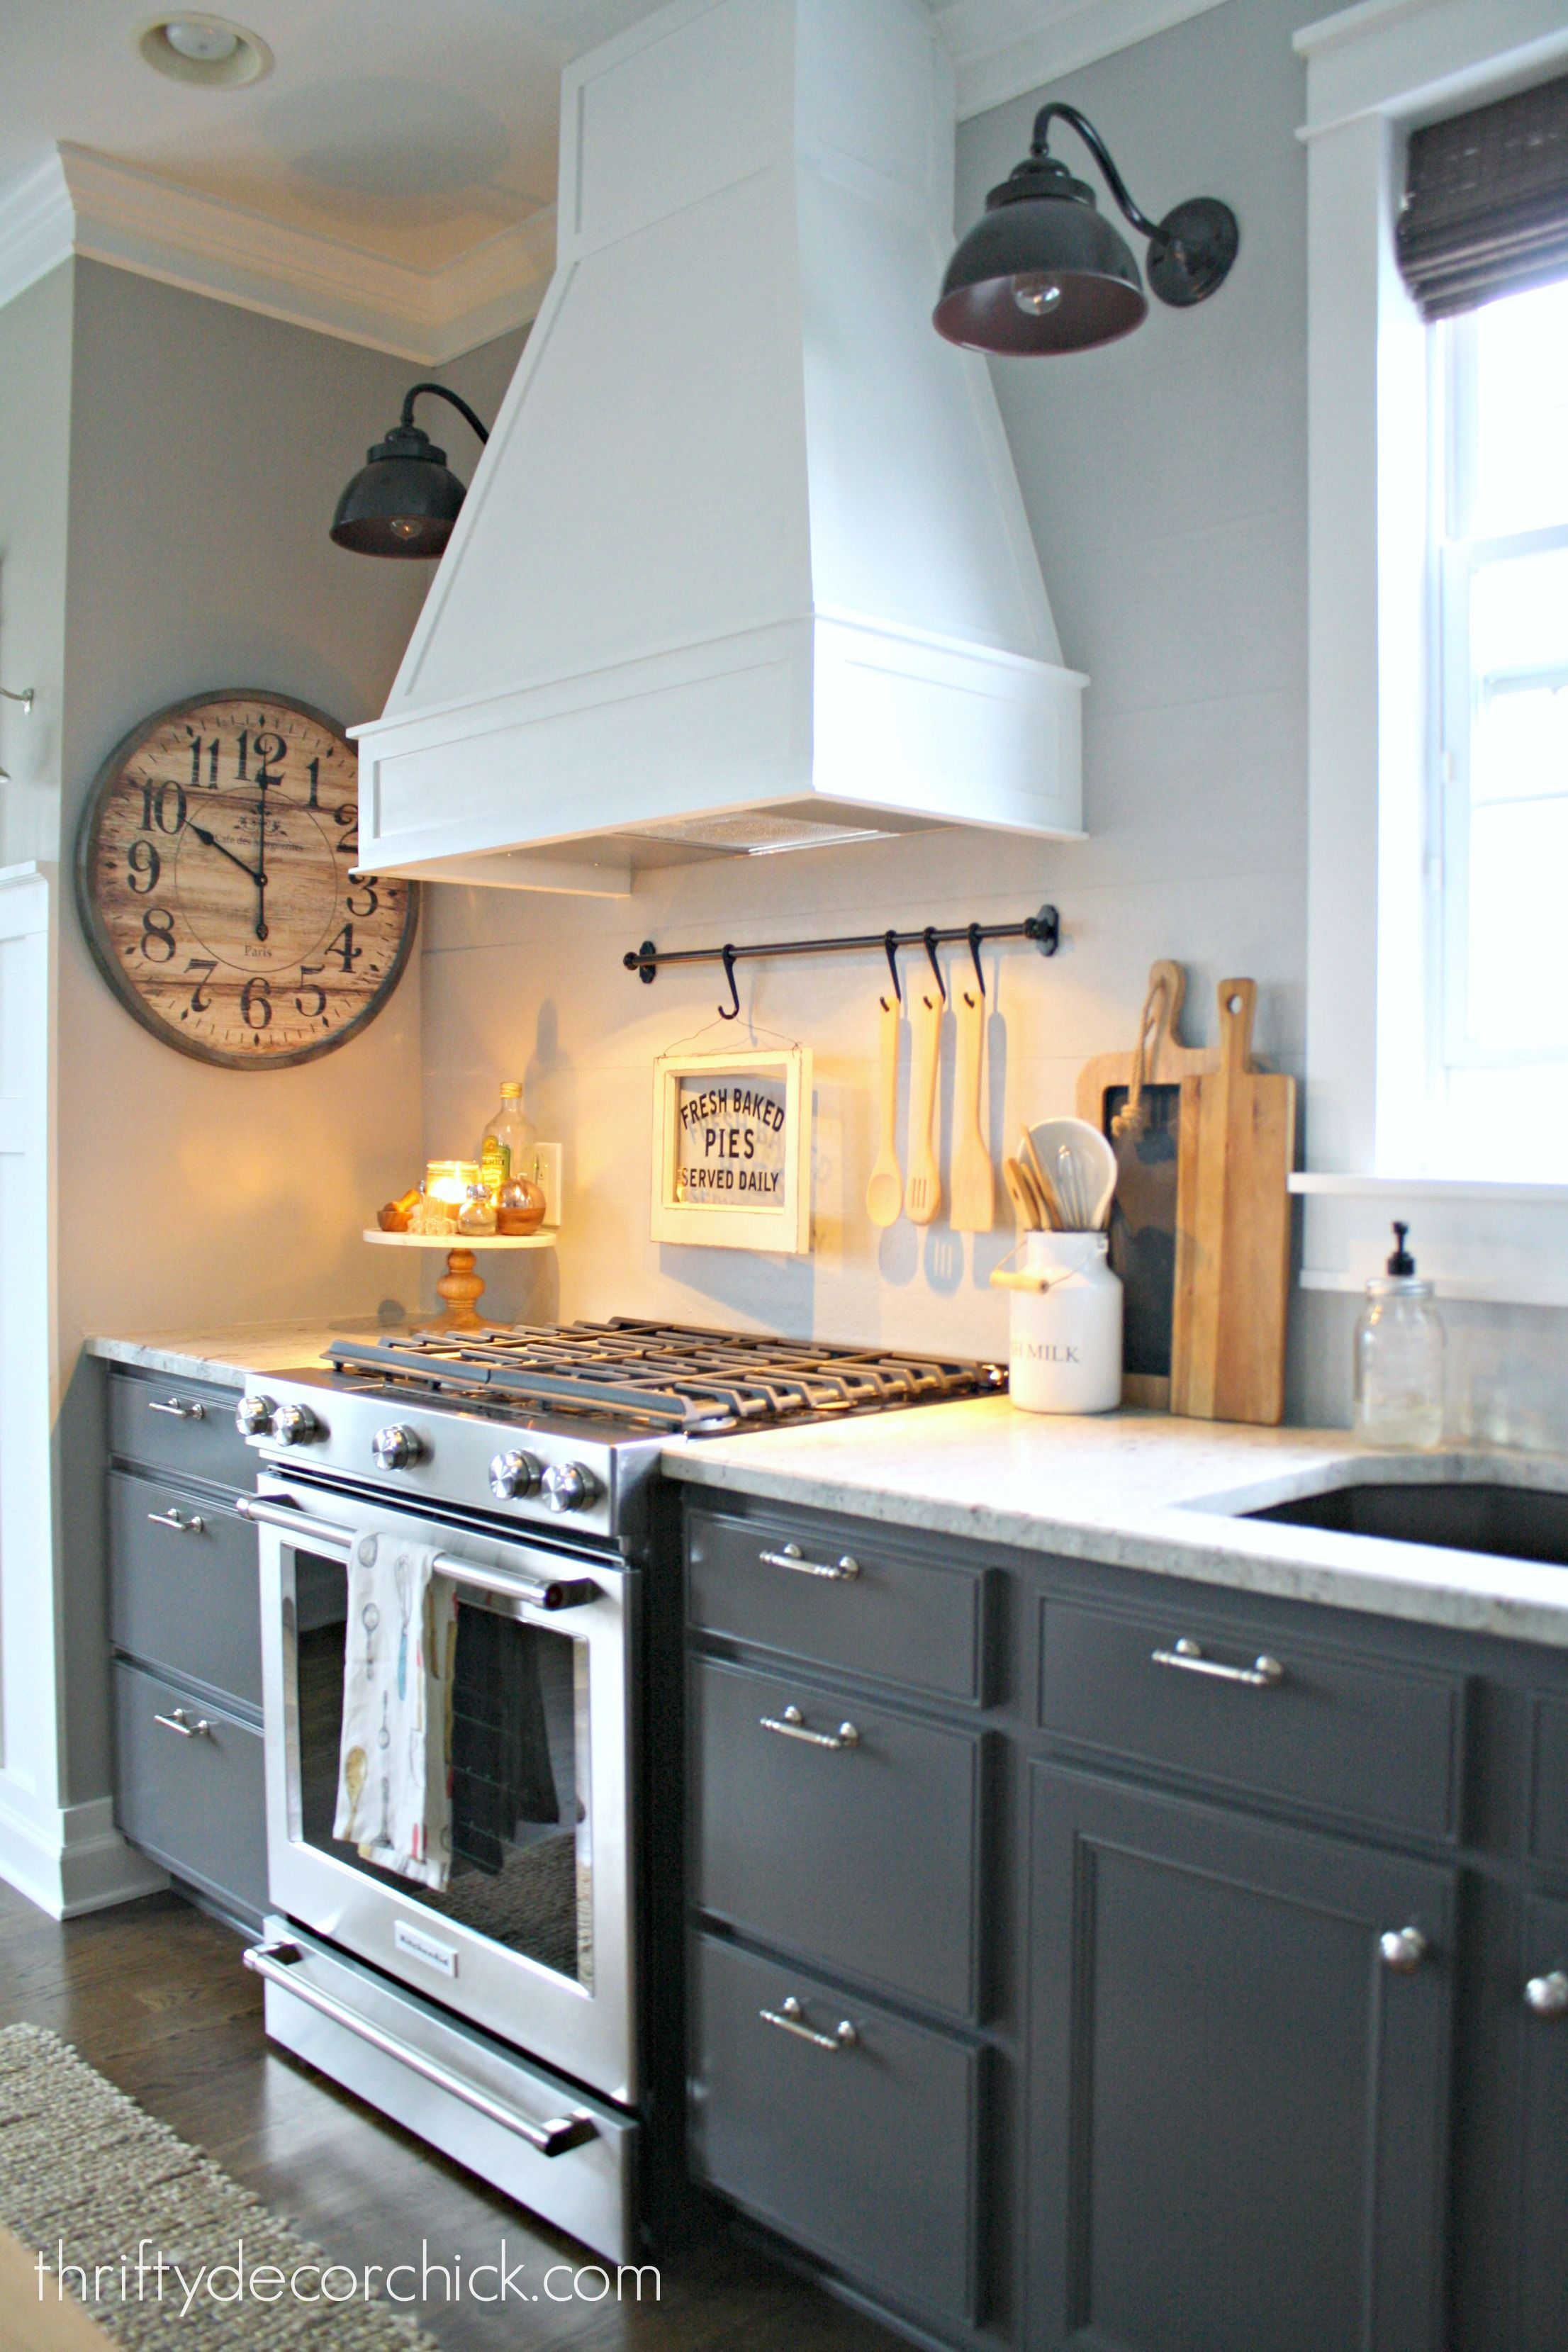 Image Result For White Wood Vent Hood Stove Decor Kitchen Range Hood Kitchen Design